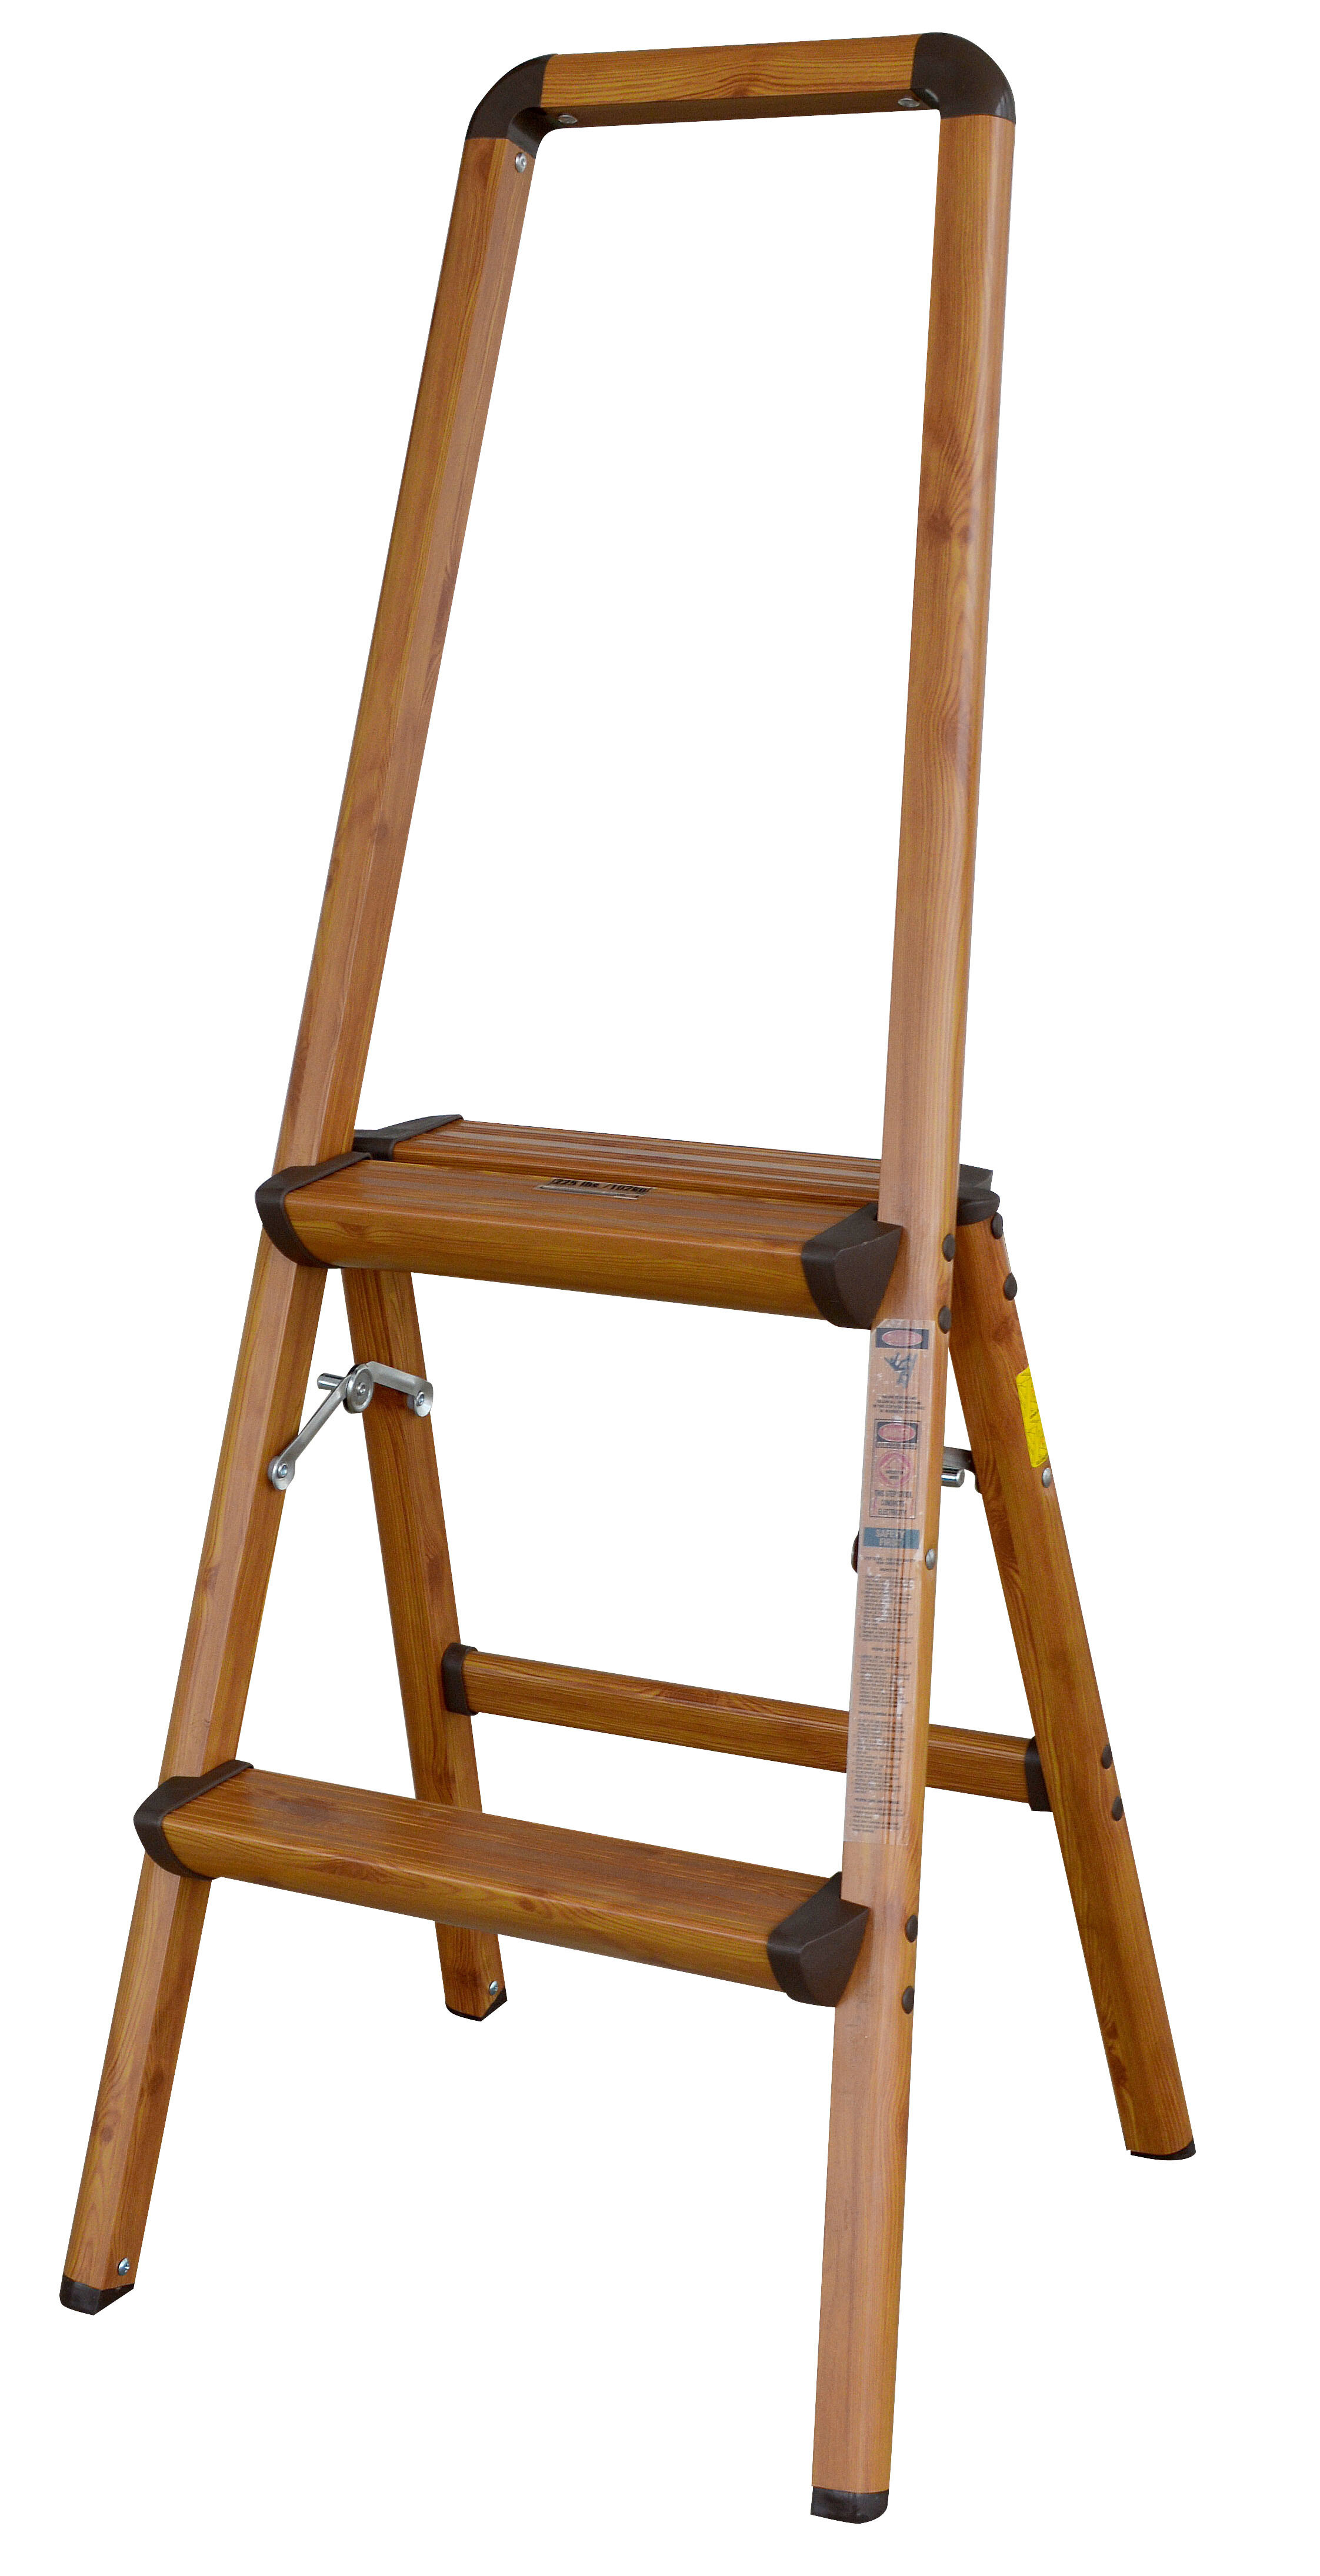 3.7 Ft Aluminum Lightweight Step Ladder With 225 Lb. Load Capacity